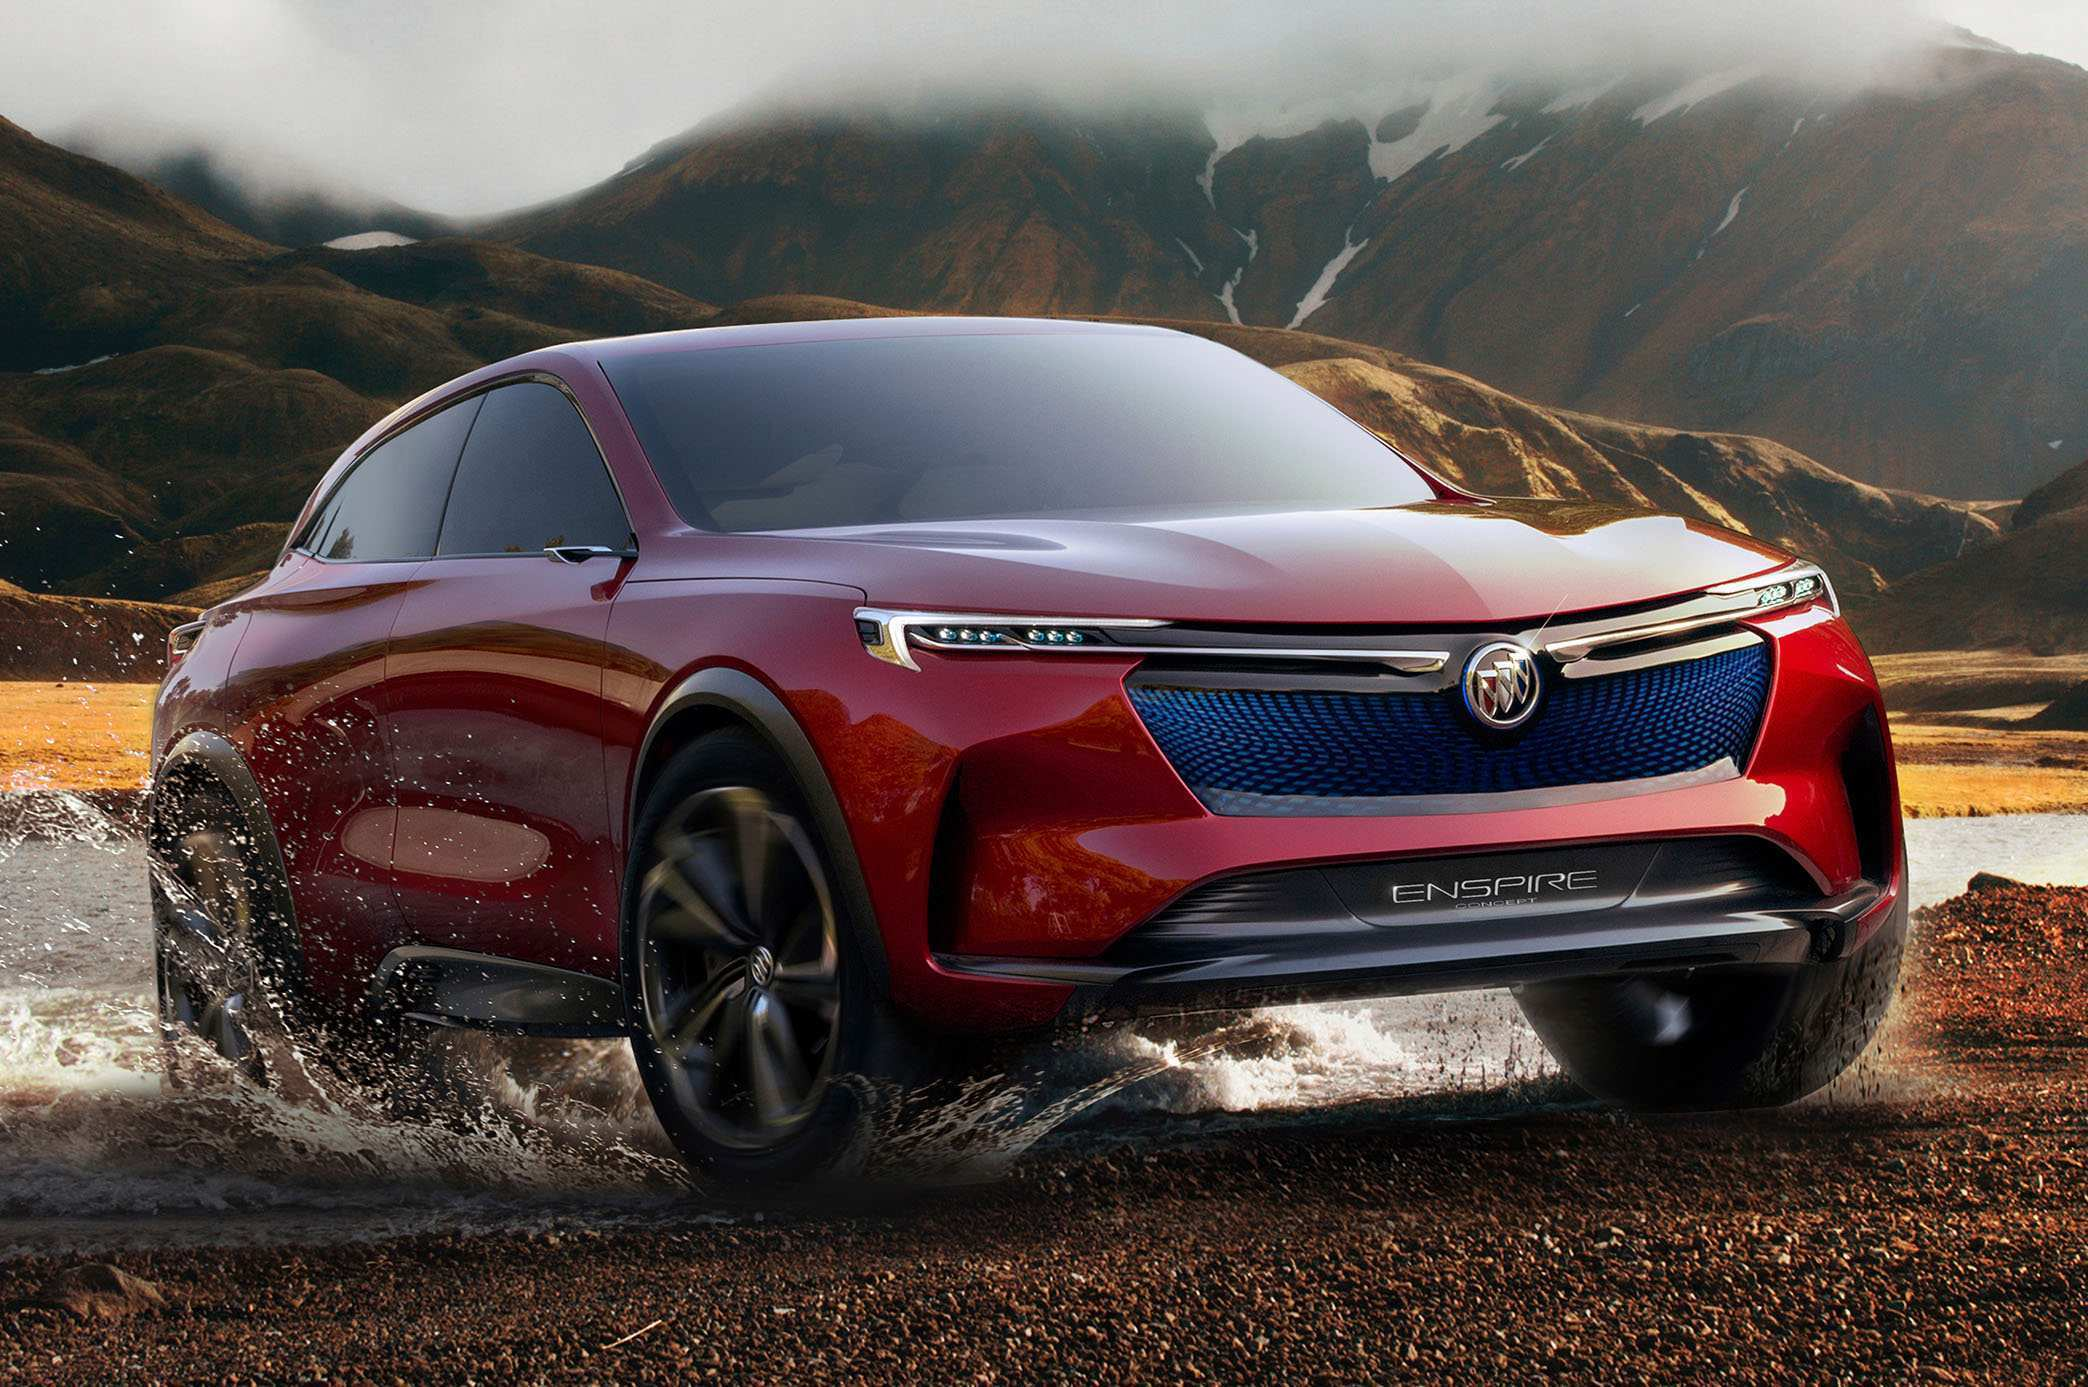 42 Concept of 2020 Buick Cars Redesign by 2020 Buick Cars